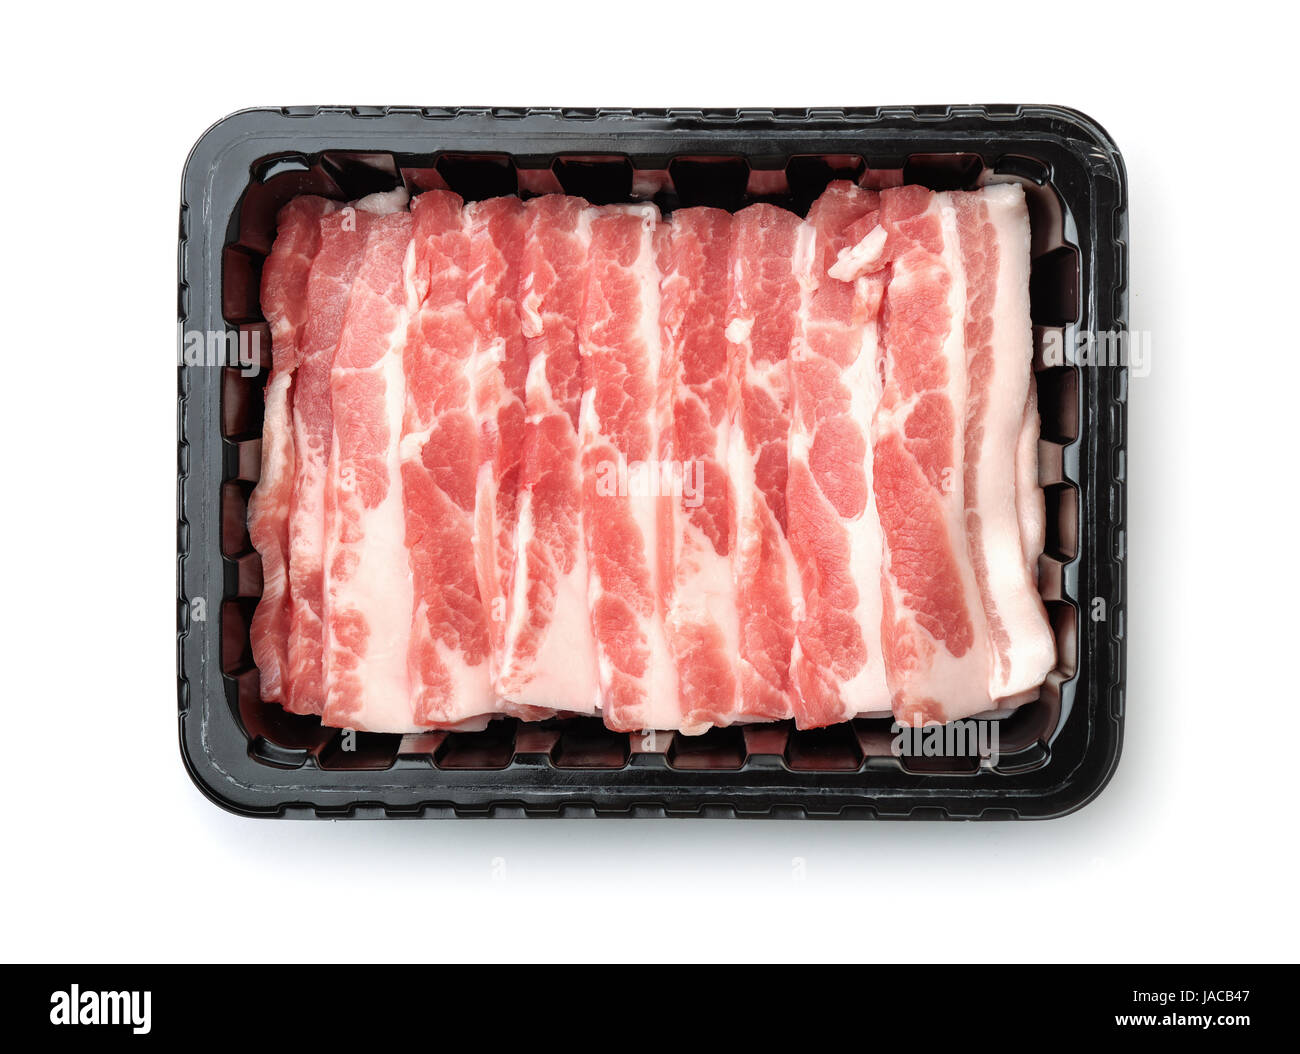 Top view of plastic disposable tray with raw sliced bacon isolated on white - Stock Image